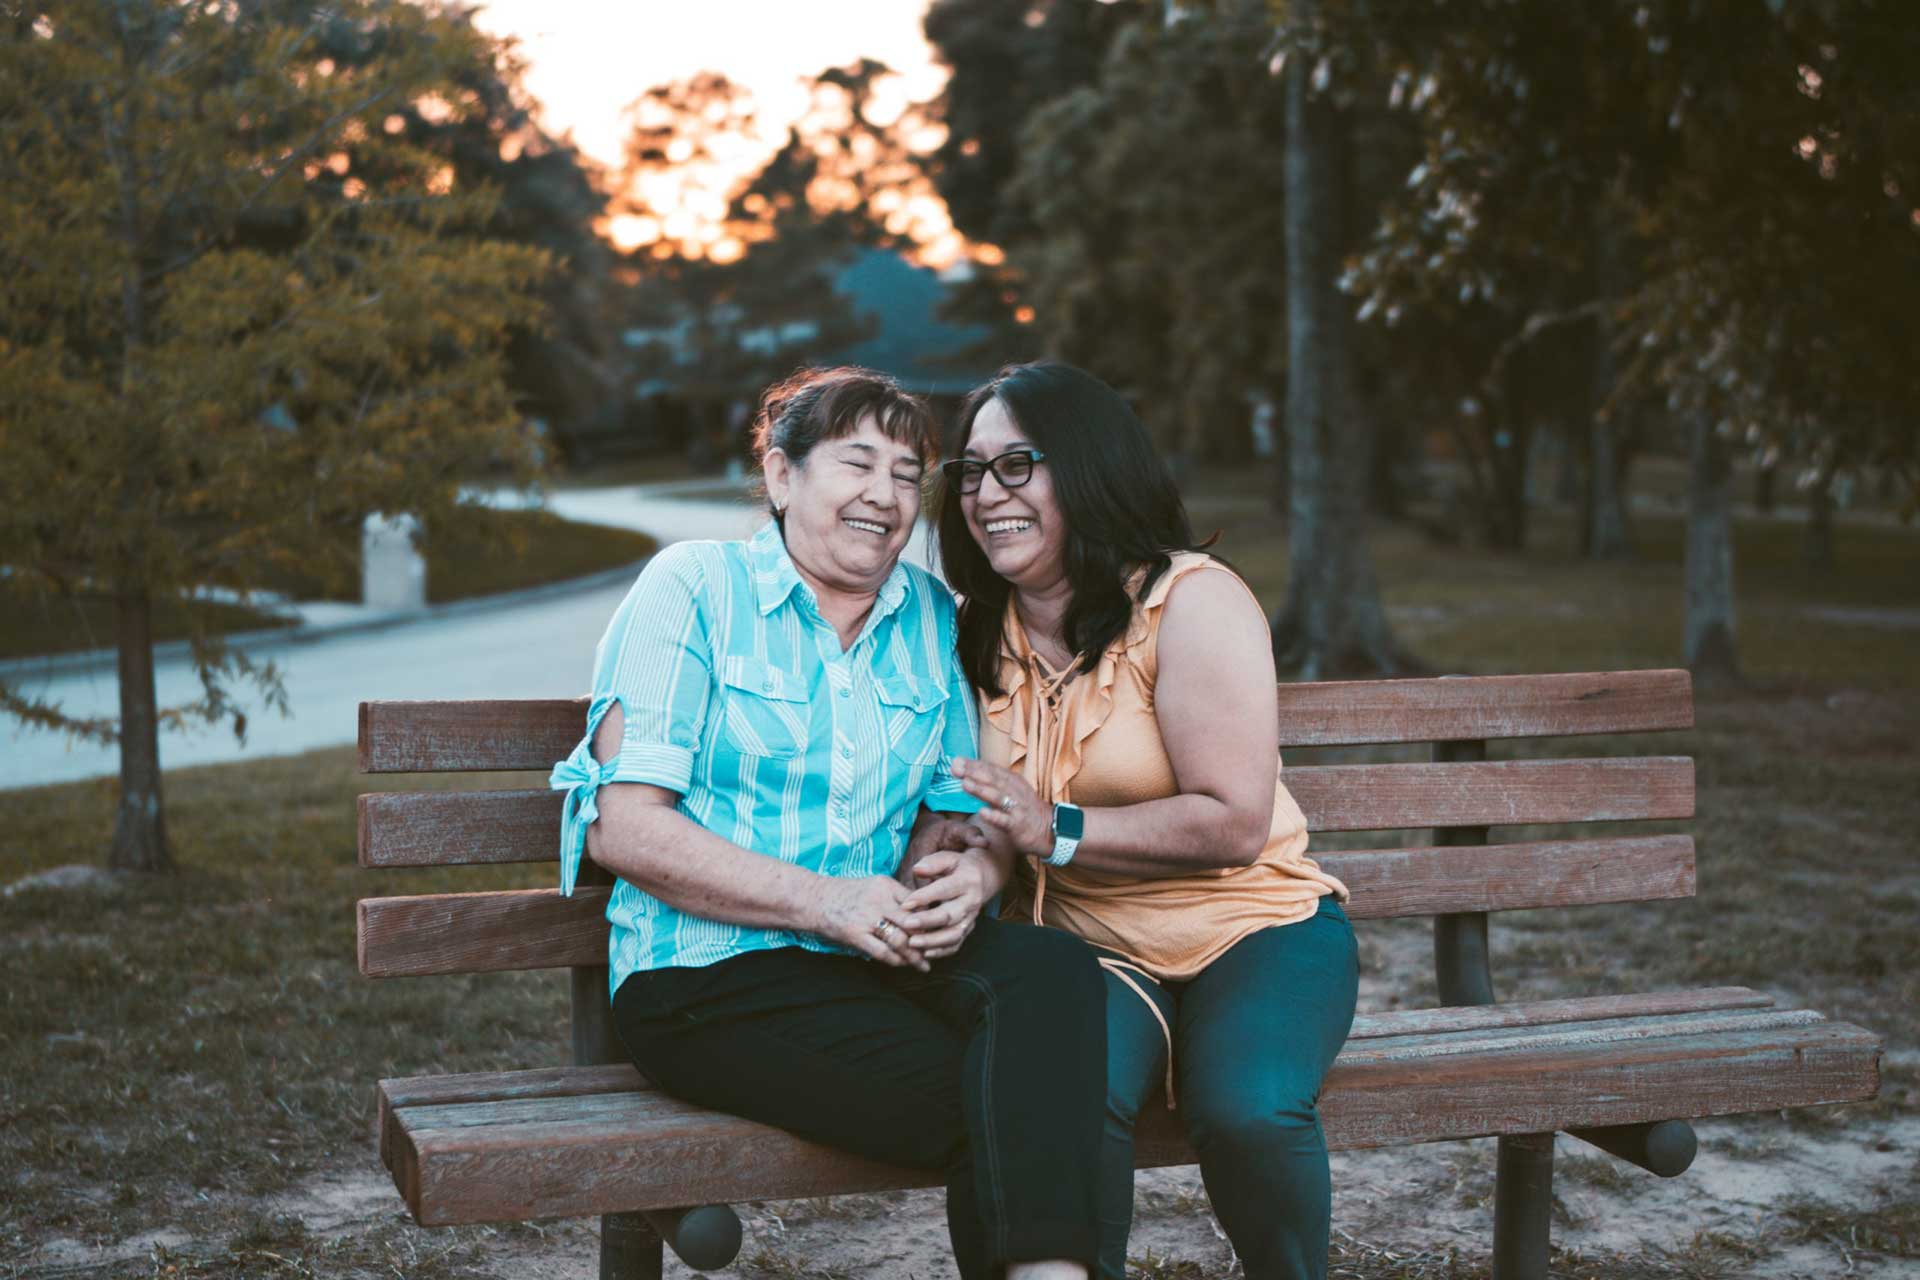 two older women laughing together on a park bench